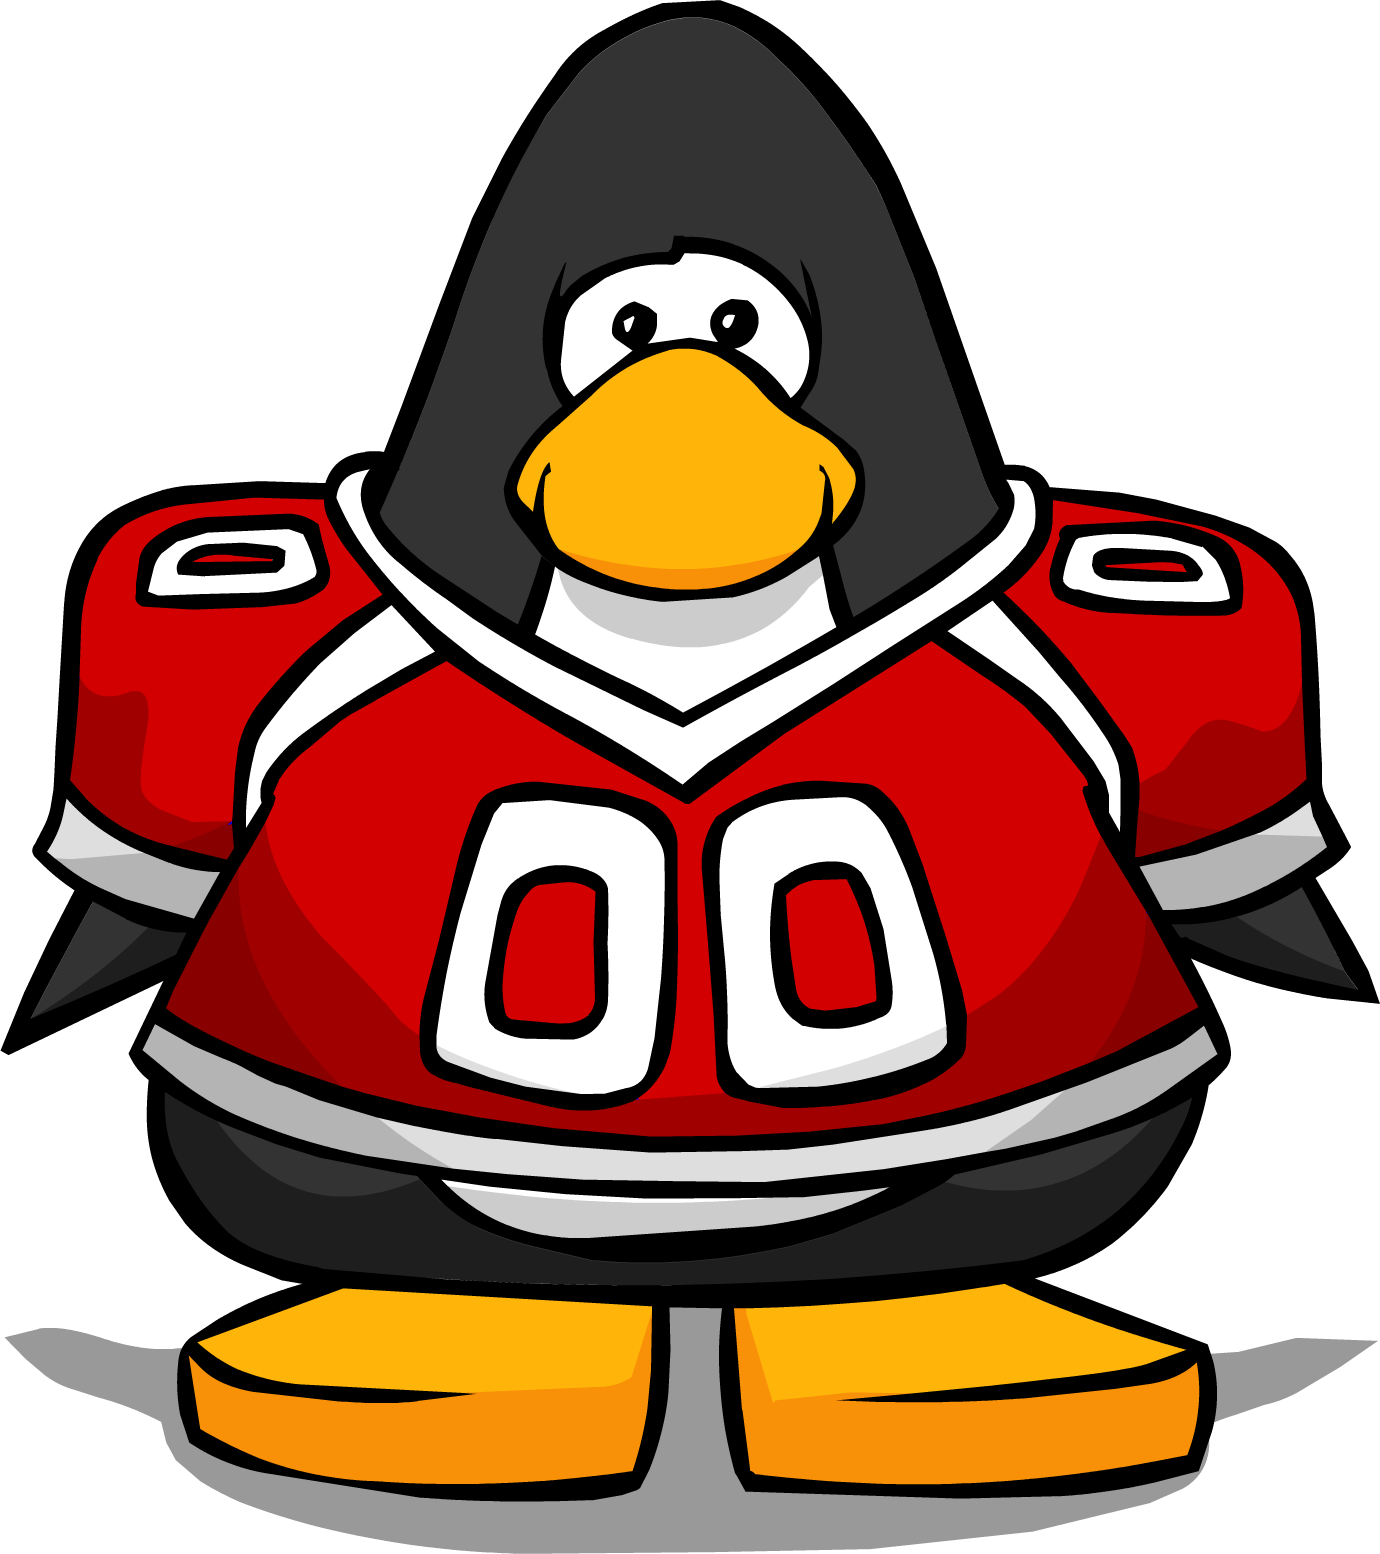 Jersey clipart football fan. Image red from a